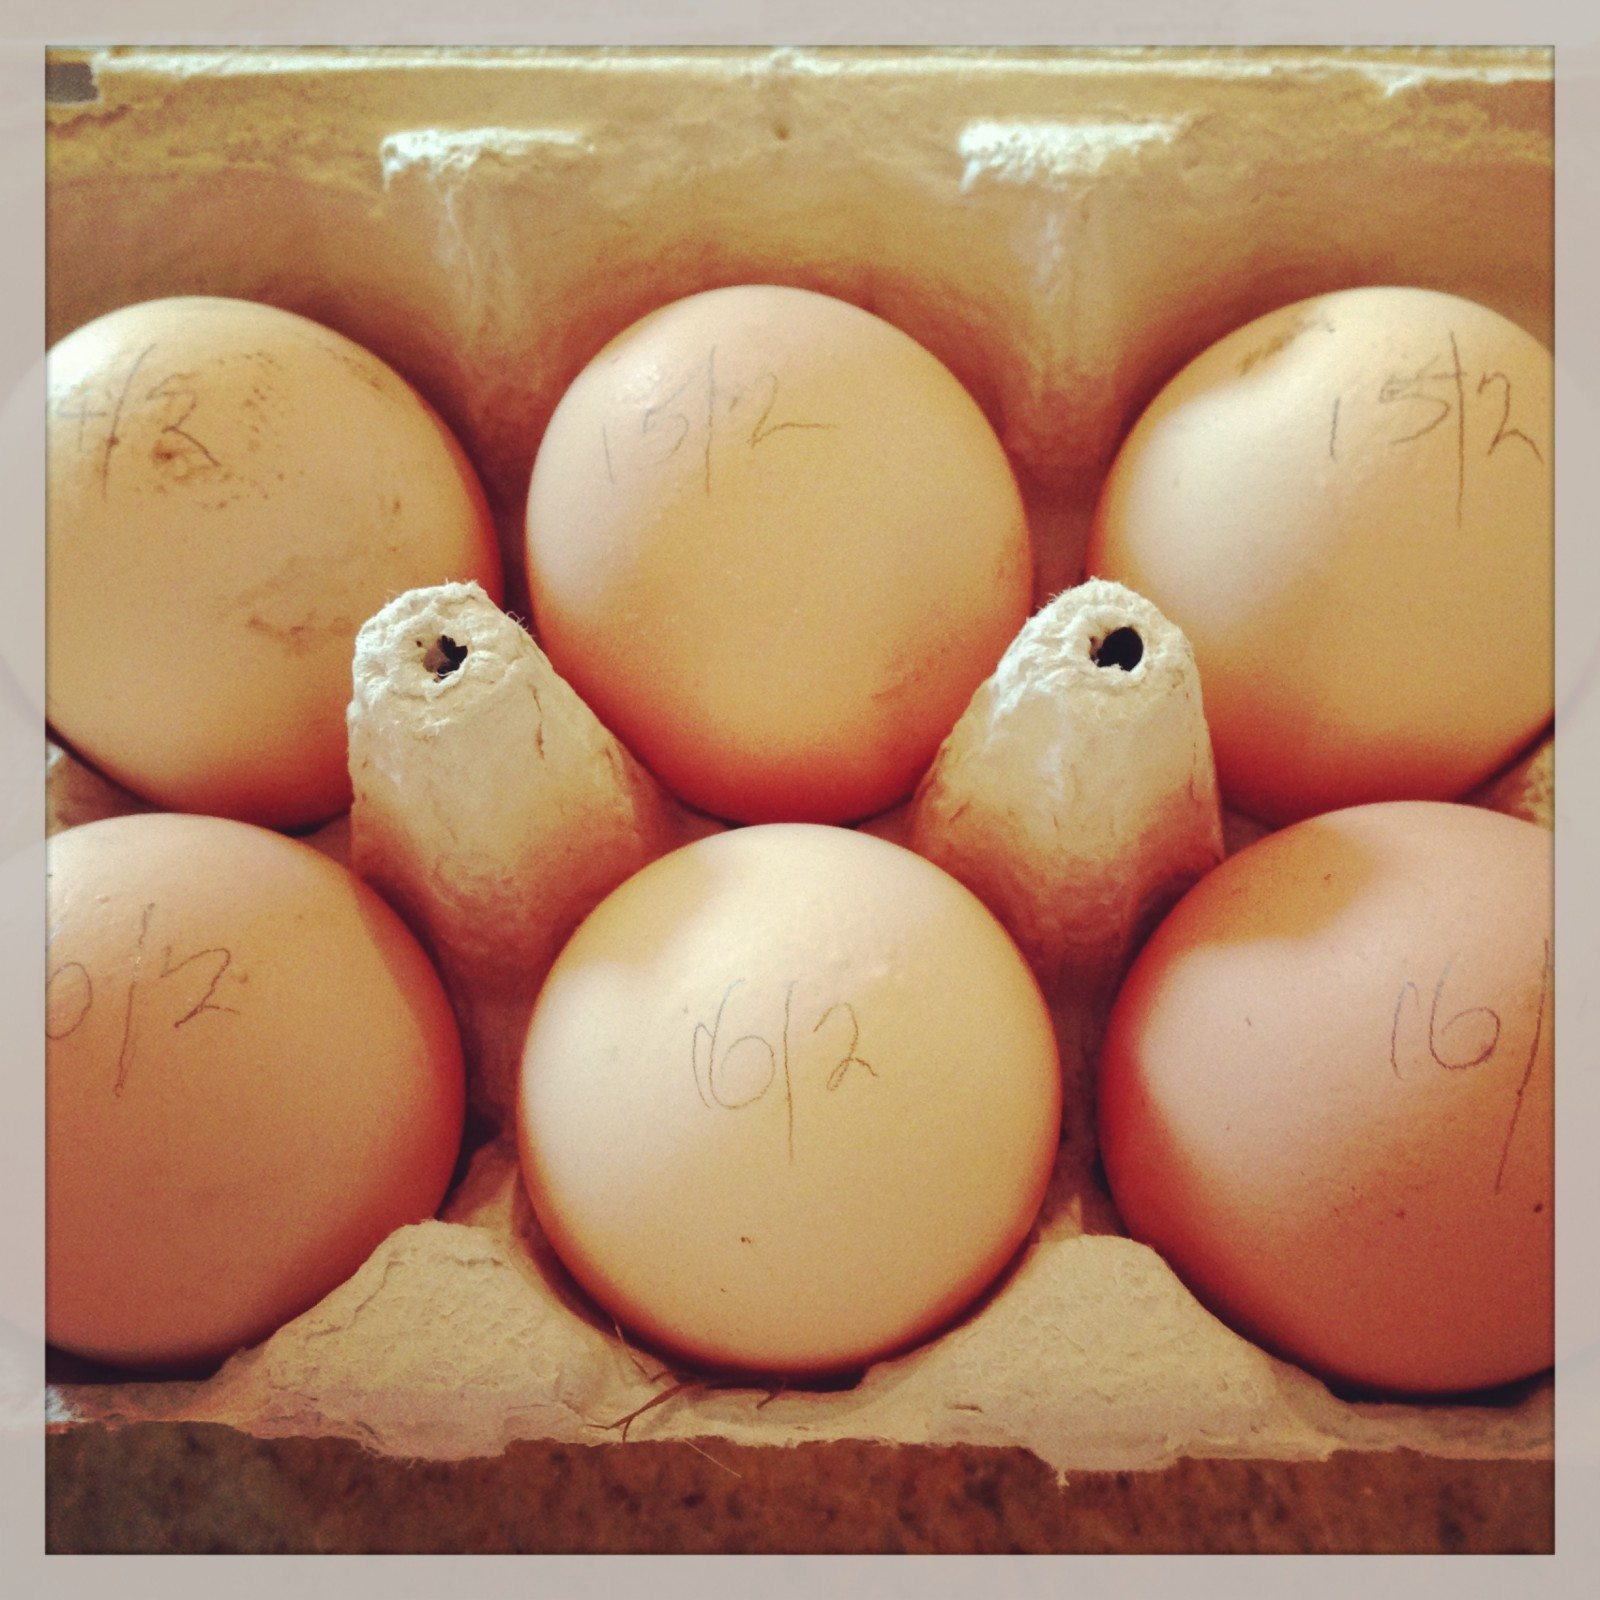 Eggs from my friend's mum's chickens